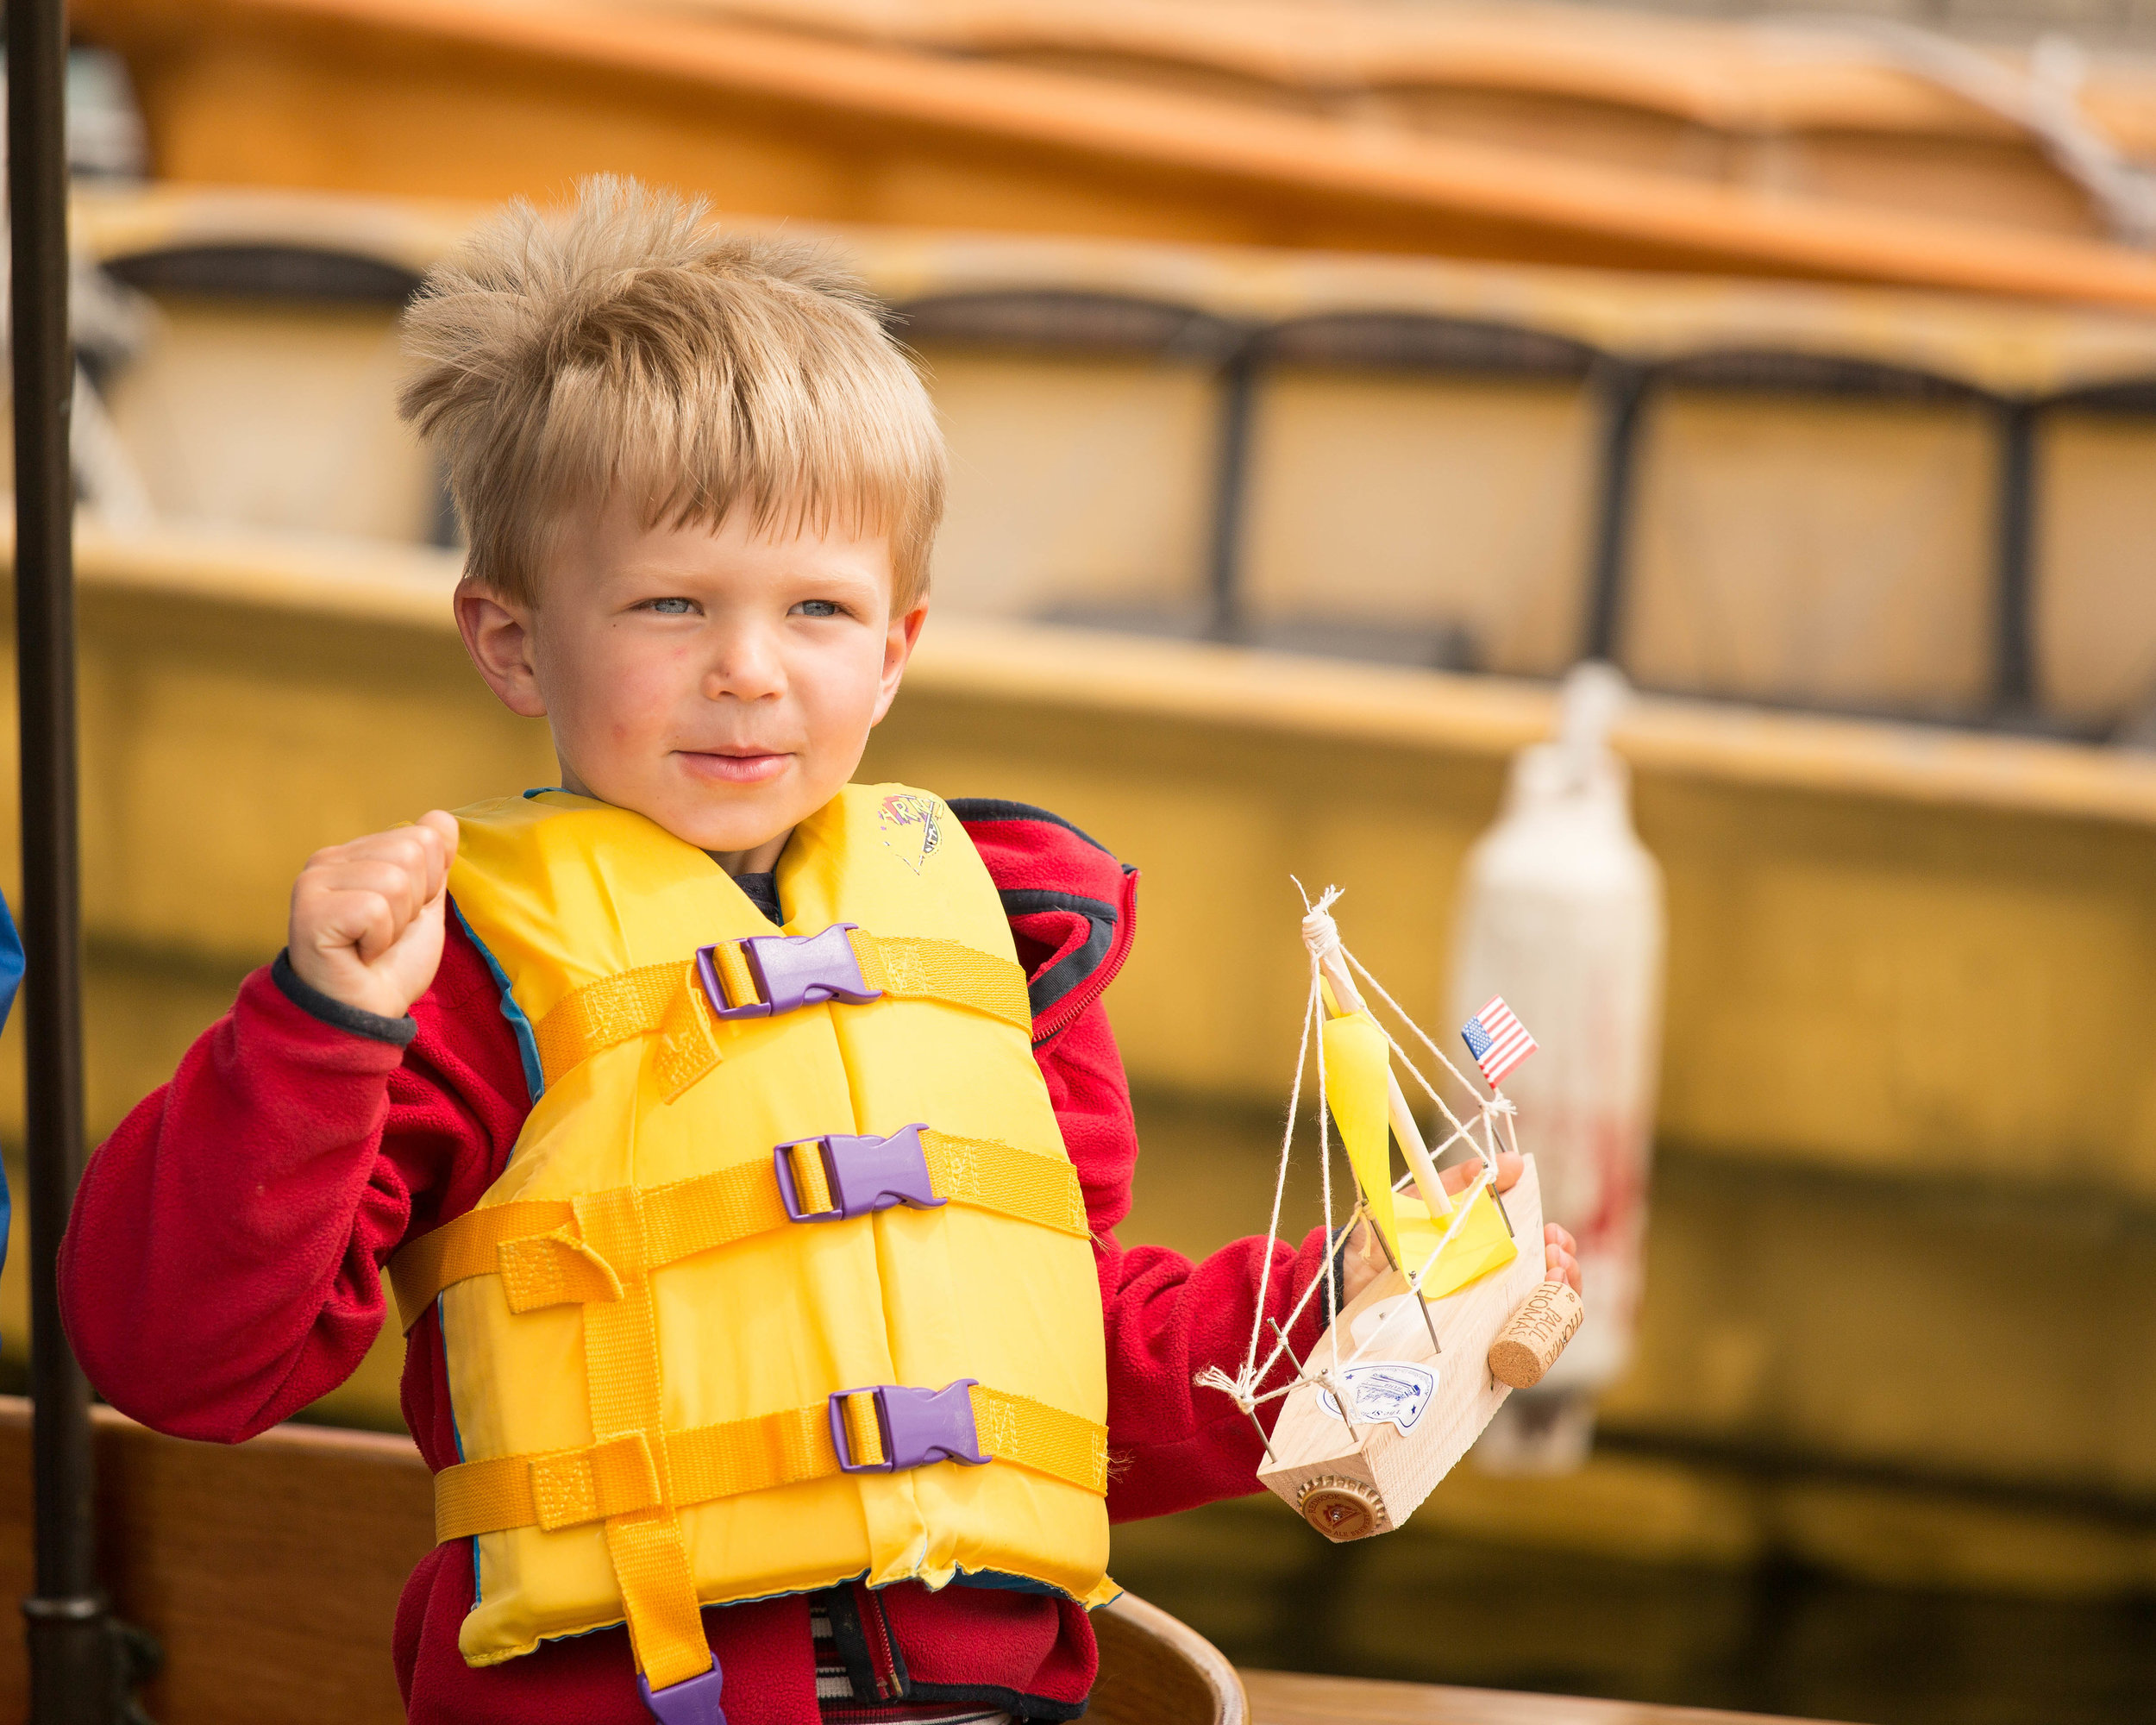 Kid in yellow life jacket and red sweatshirt holding a wooden toy boat